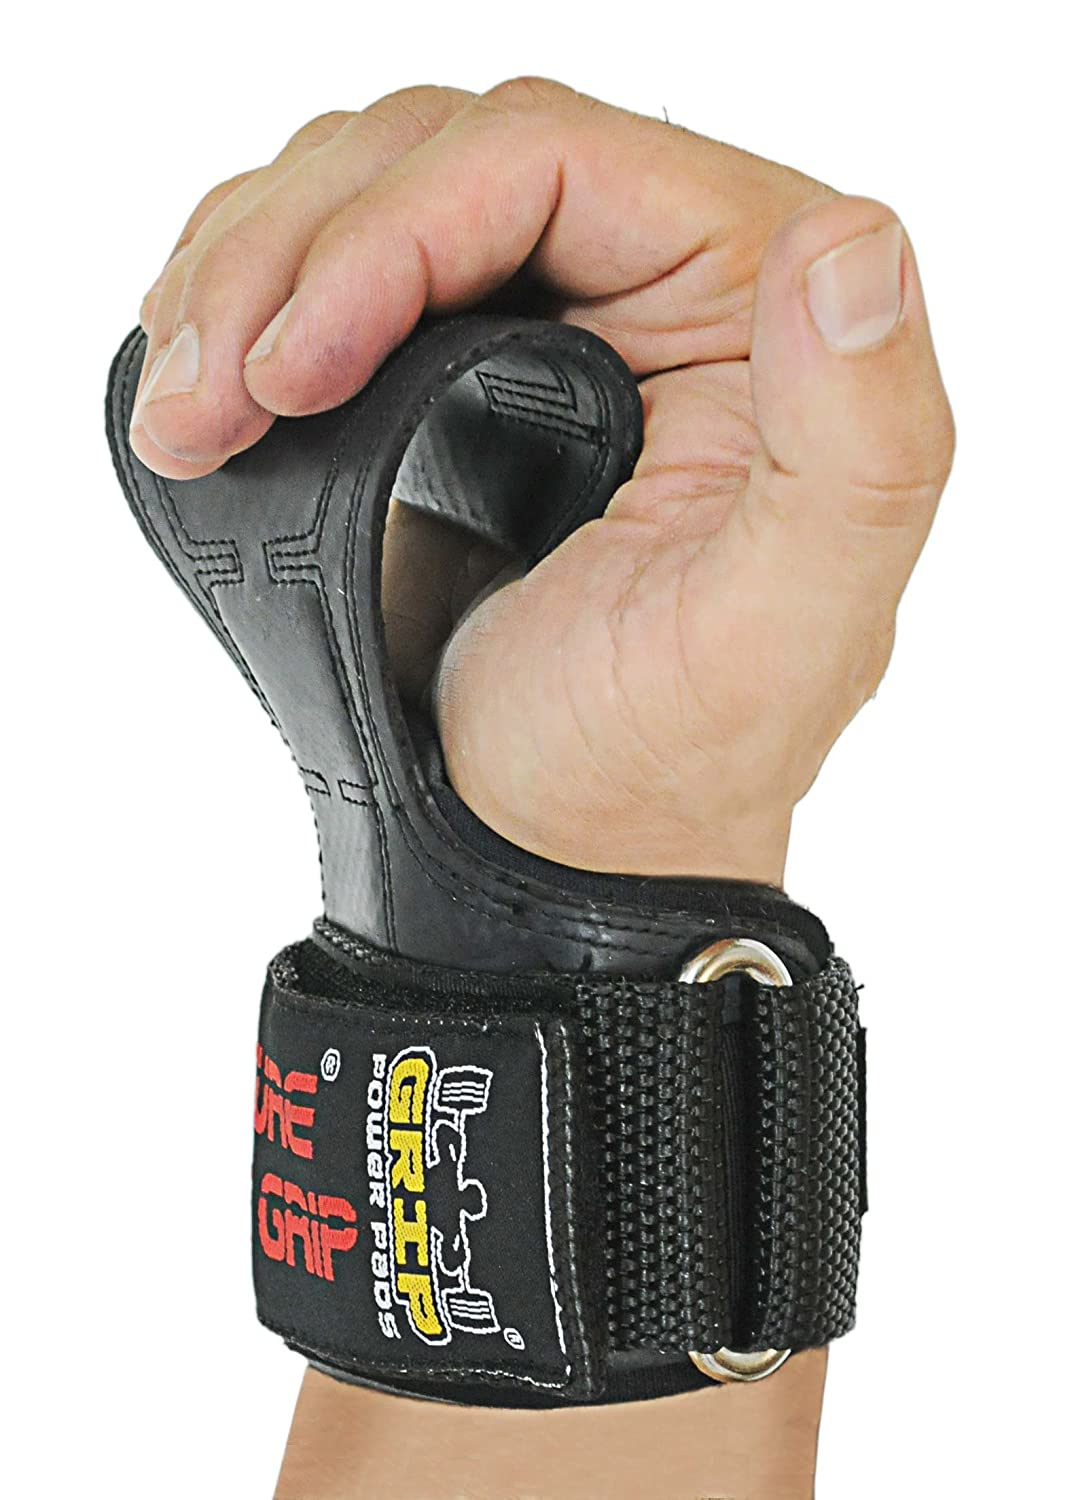 Alternative to Power Lifting Hooks For Deadlifts With Built in Adjustable Neoprene Padded Wrist Wrap Support. FIT Black Rubber Cobra Grips PRO Weight Lifting Gloves Power Lifting Heavy Duty Straps